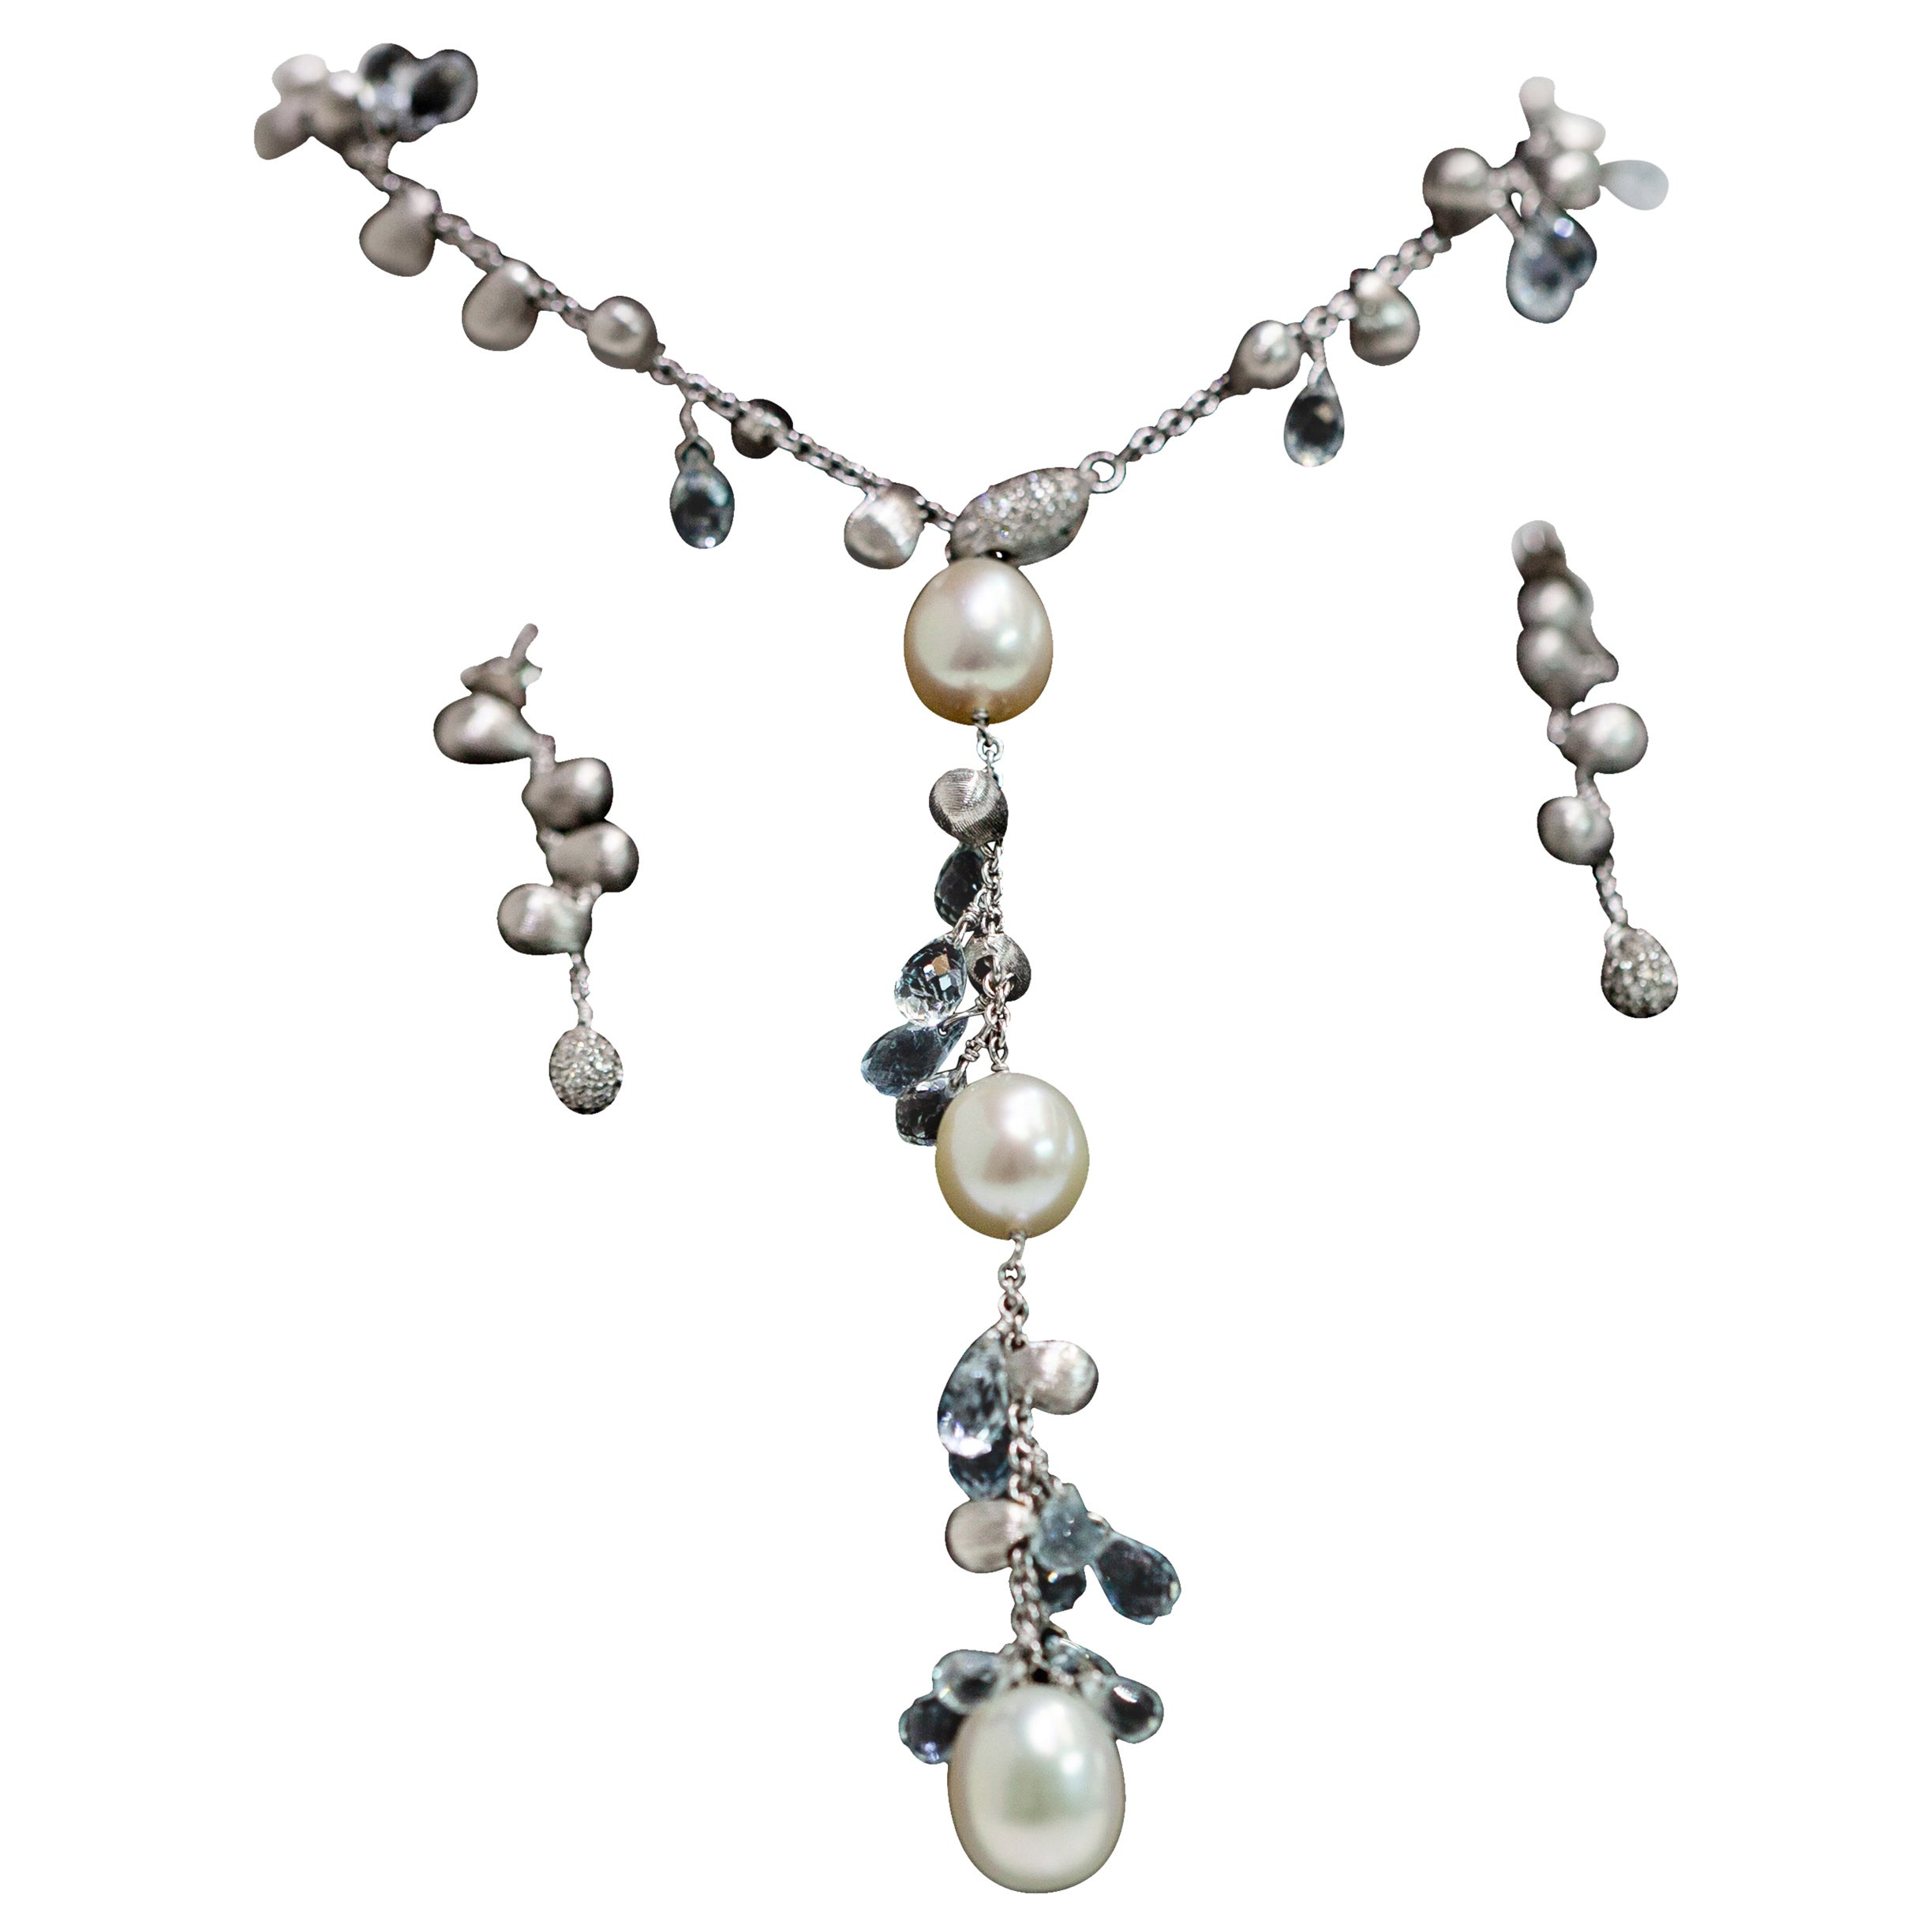 Marco Bicego 18k White Gold Lariat Necklace & Earrings With Blue Topaz & Pearl